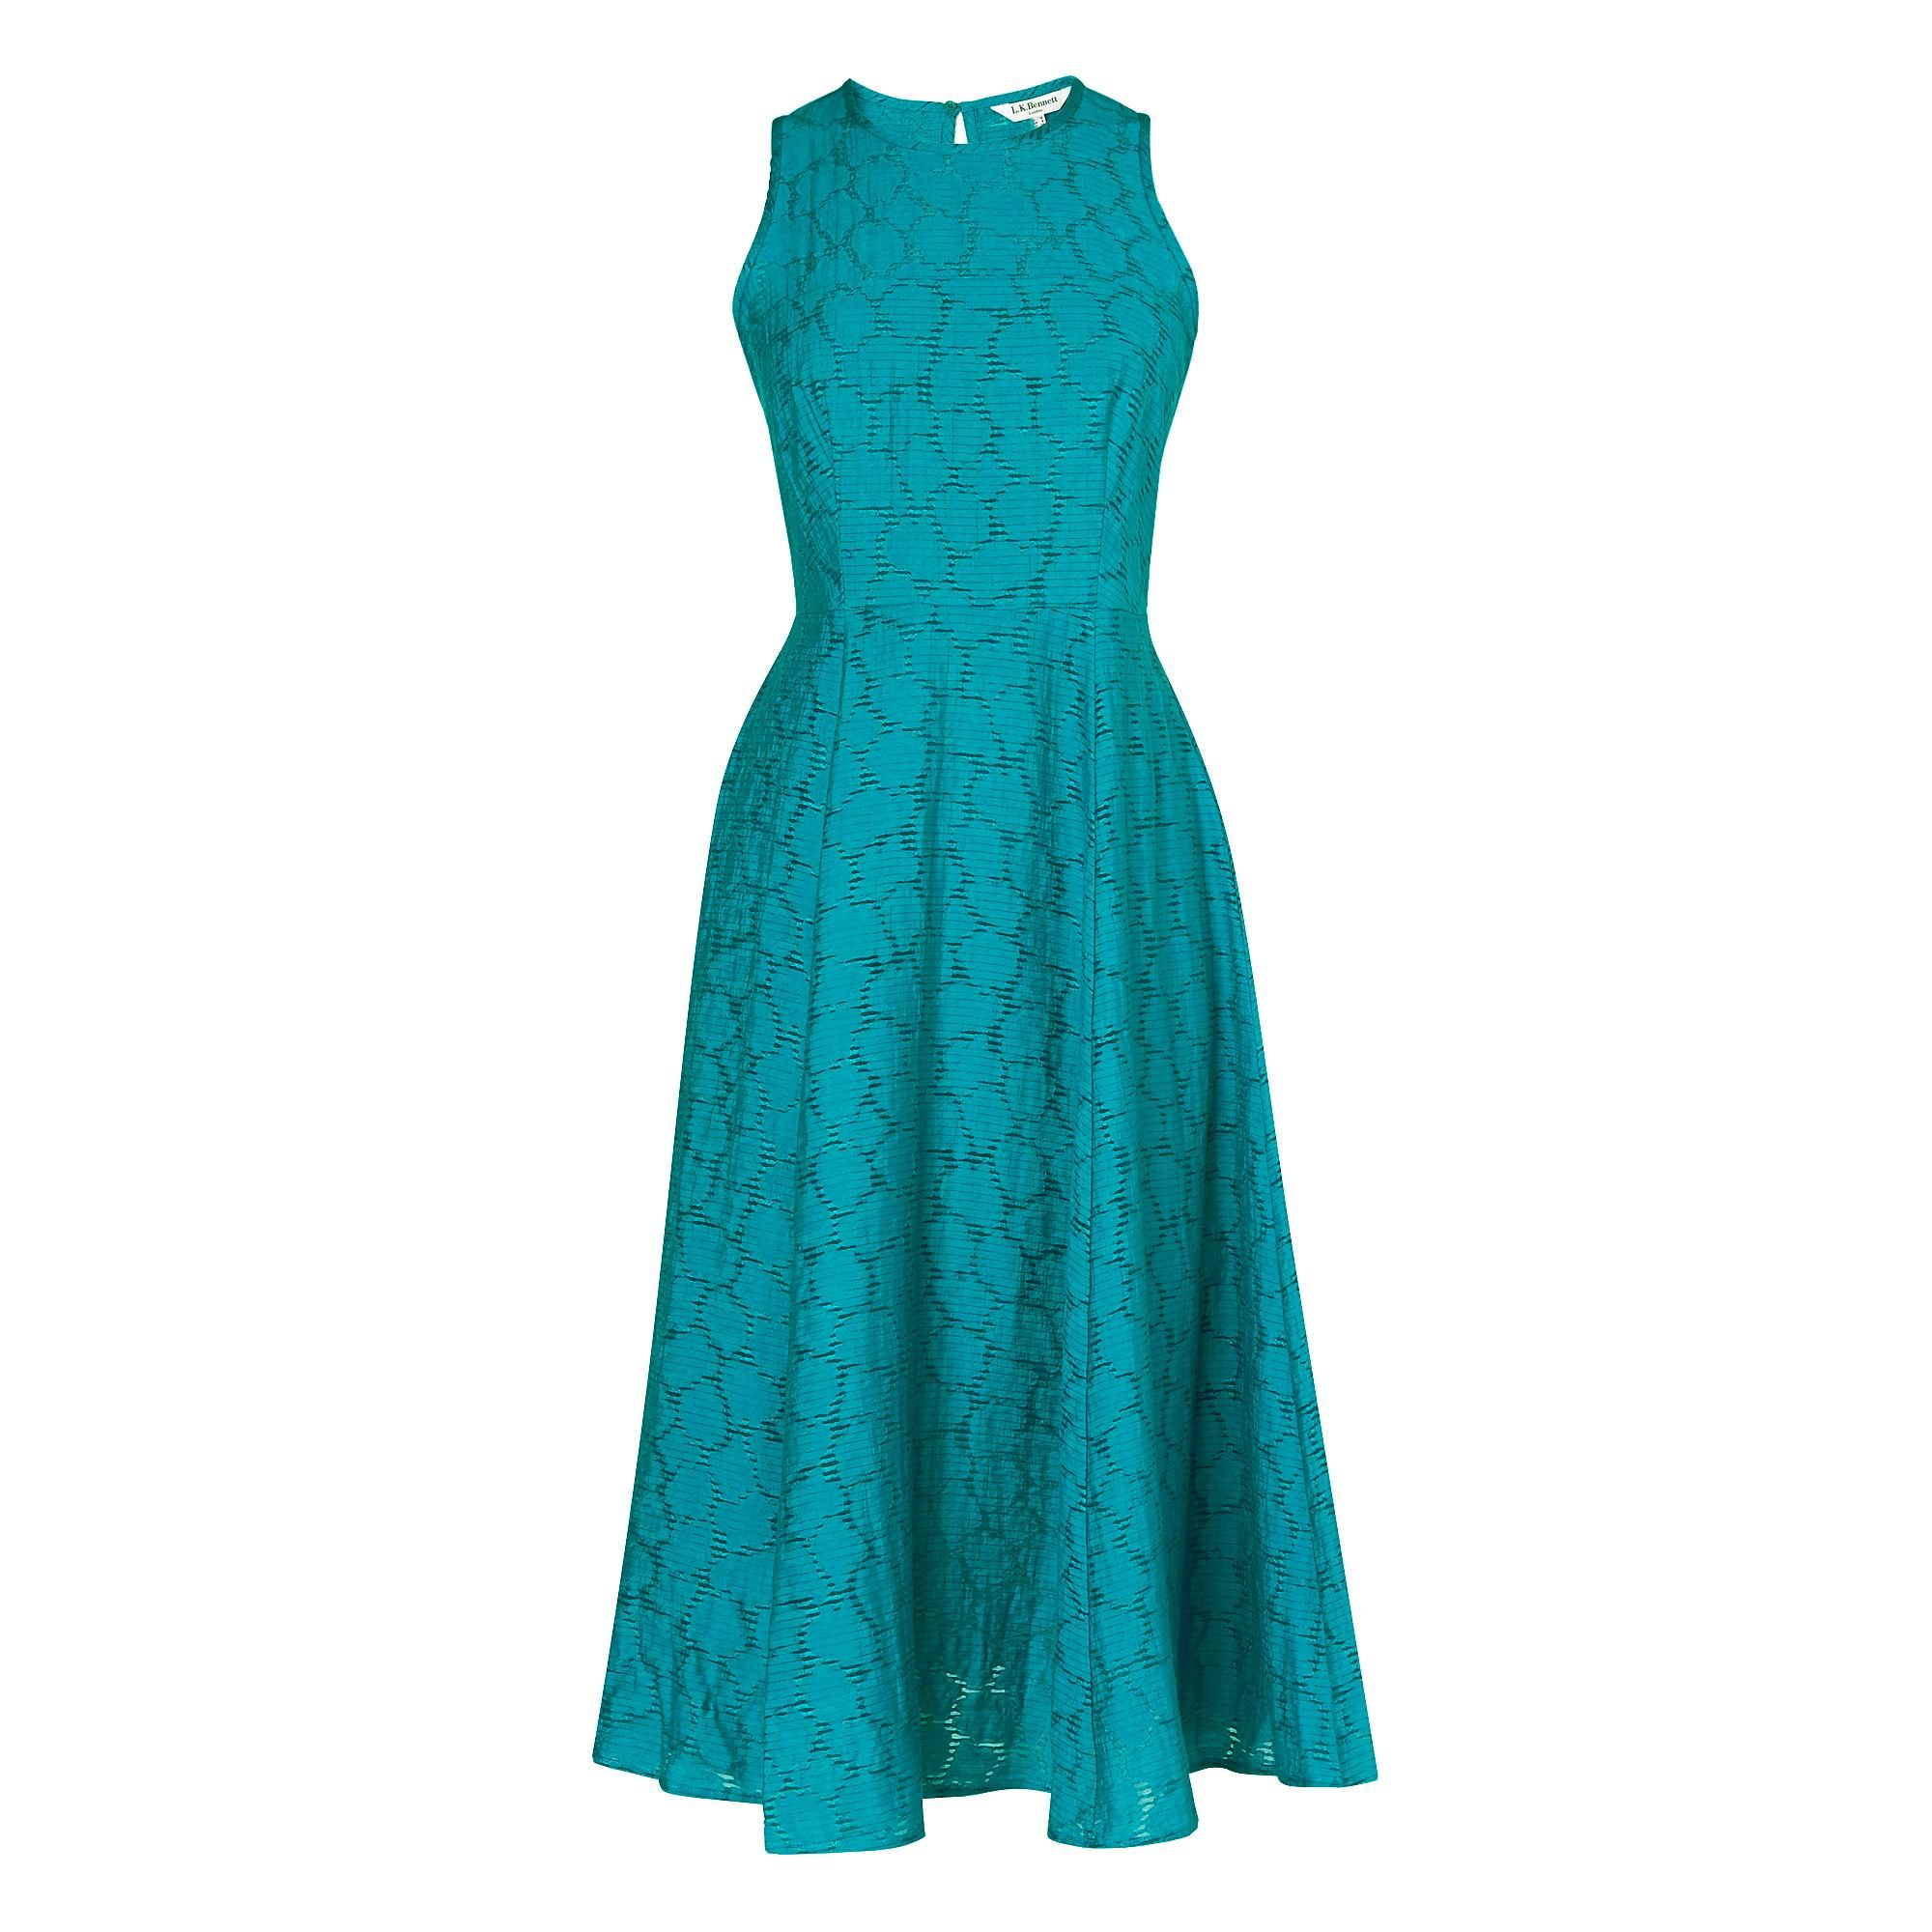 Kiera Layer Dress Green - Jade | Autumn Wedding Outfits | Pinterest ...